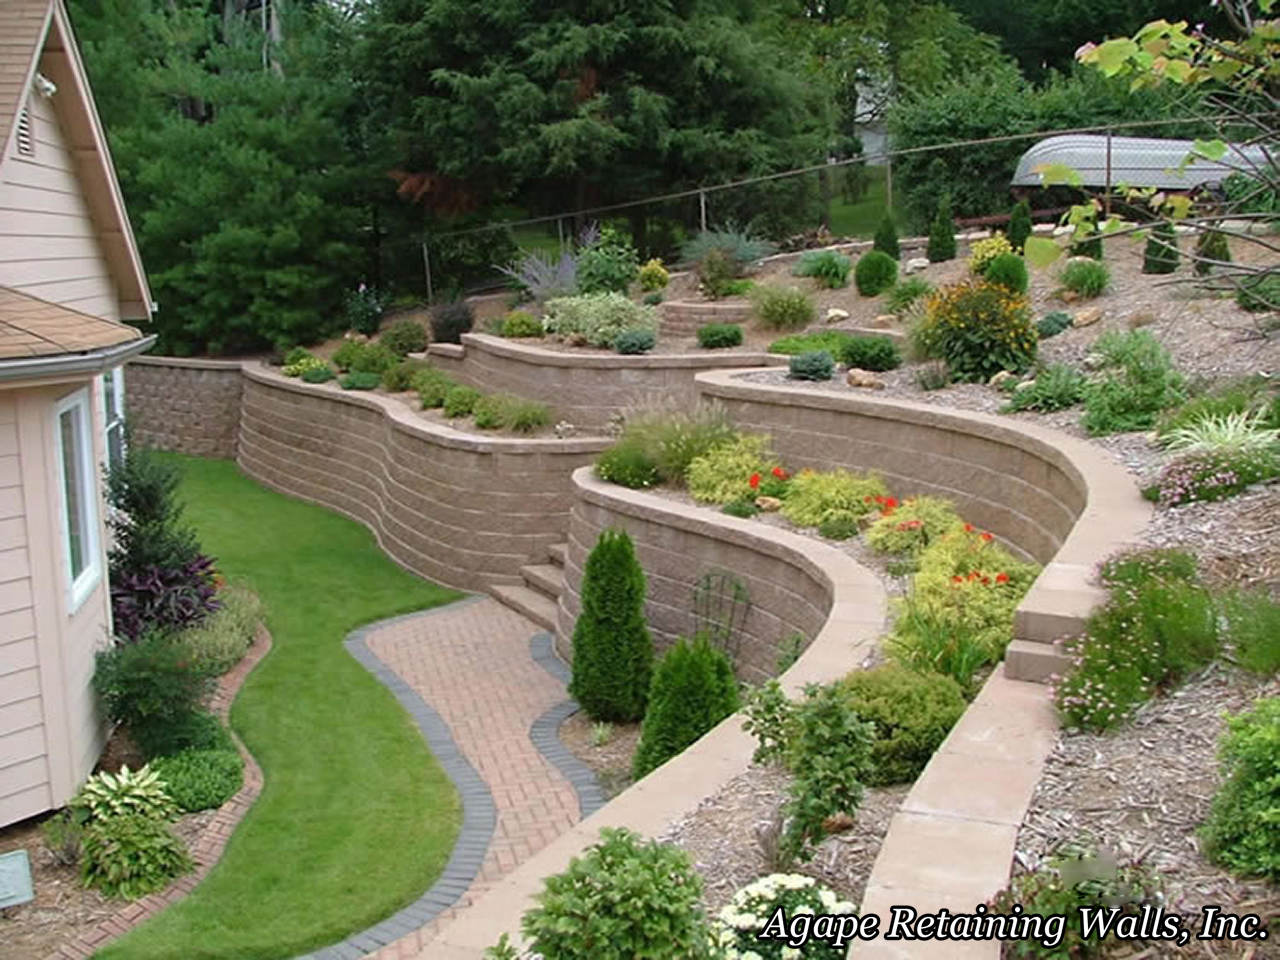 I Am So Thankful To This Homeowner For Allowing Us At Agape Retaining Walls,  Inc. To Design And Install One Of My Top Five Agape Retaining Walls, ...